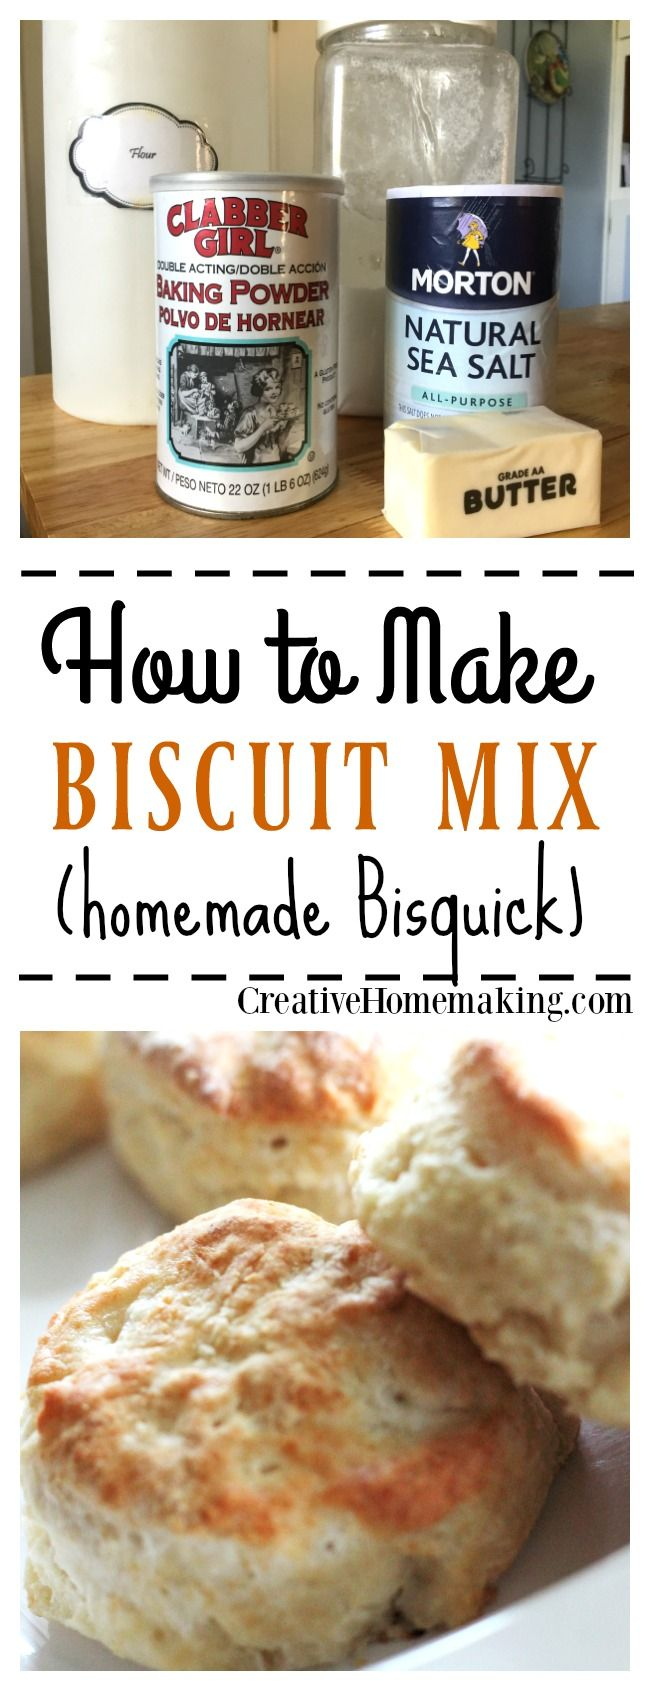 Homemade baking and biscuit mix to use in recipes that call for Bisquick. You can store it in the freezer for up to 6 months!